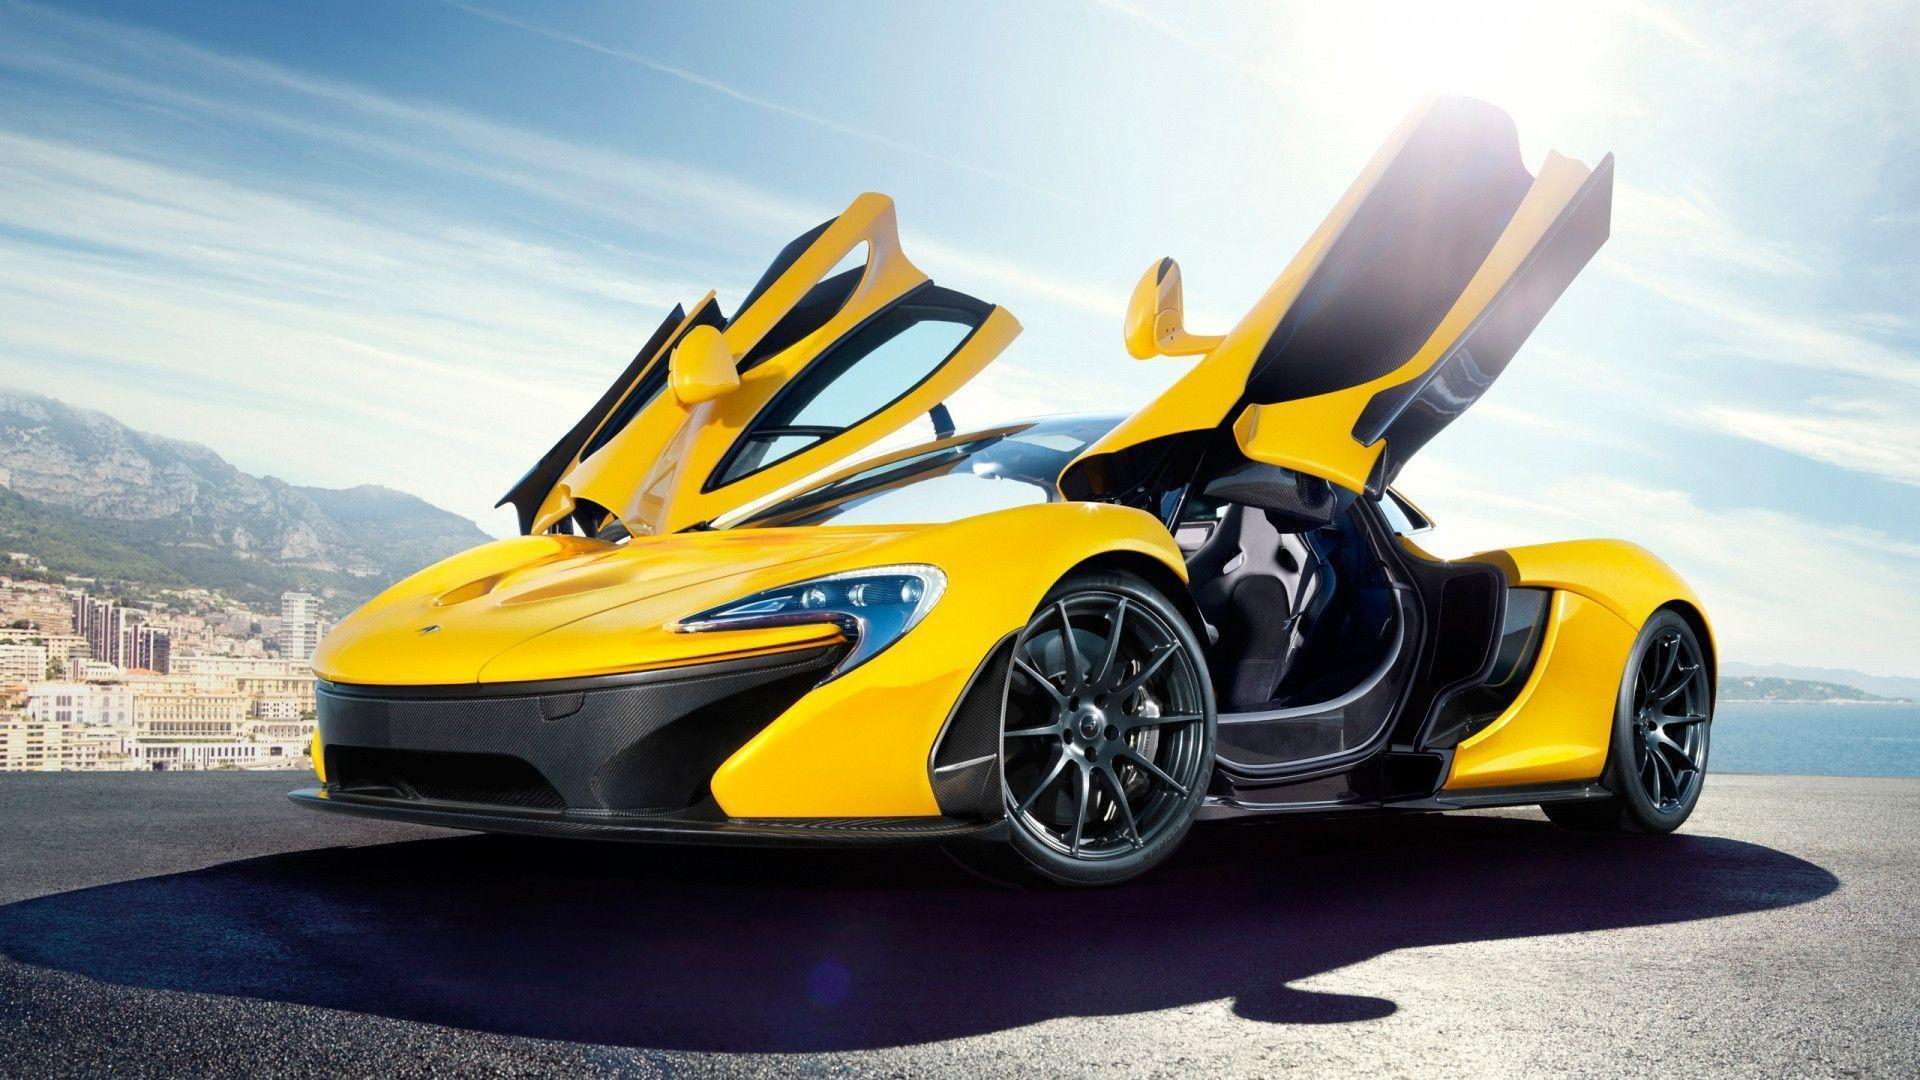 Welcome to the super car world wallpaper. All Cars Wallpapers Wallpaper Cave